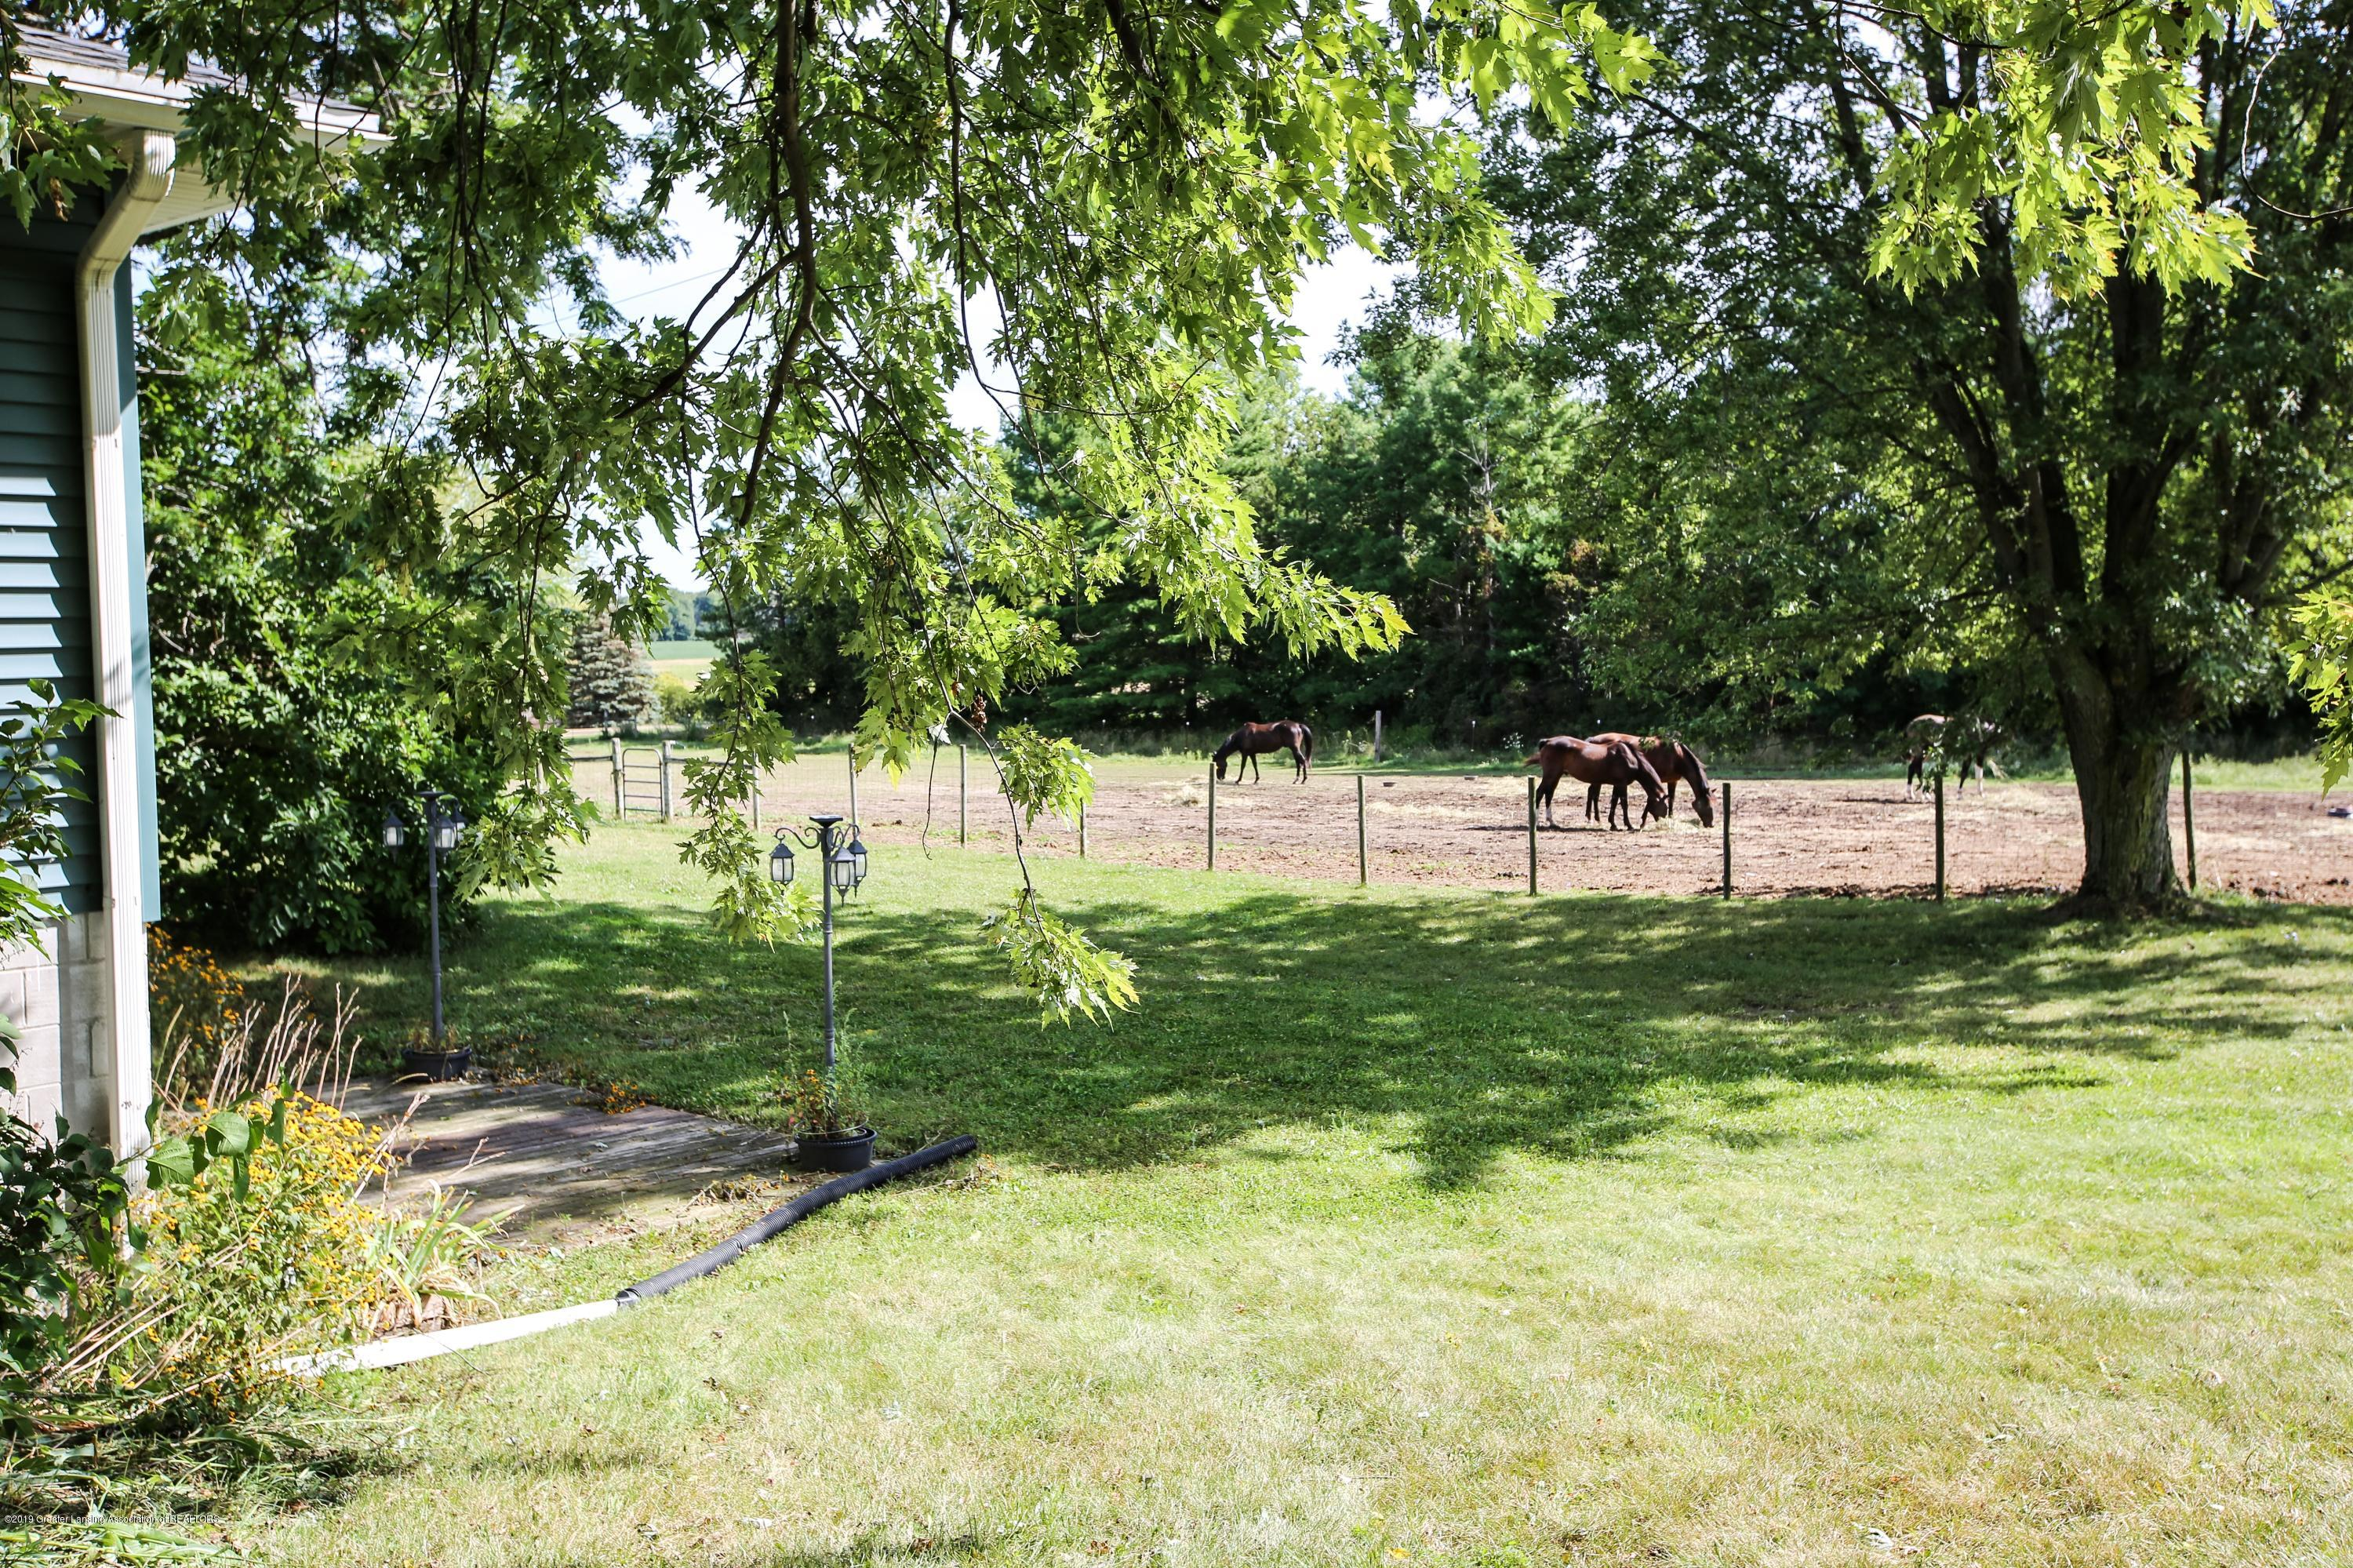 5953 W Cutler Rd - big horses - 8